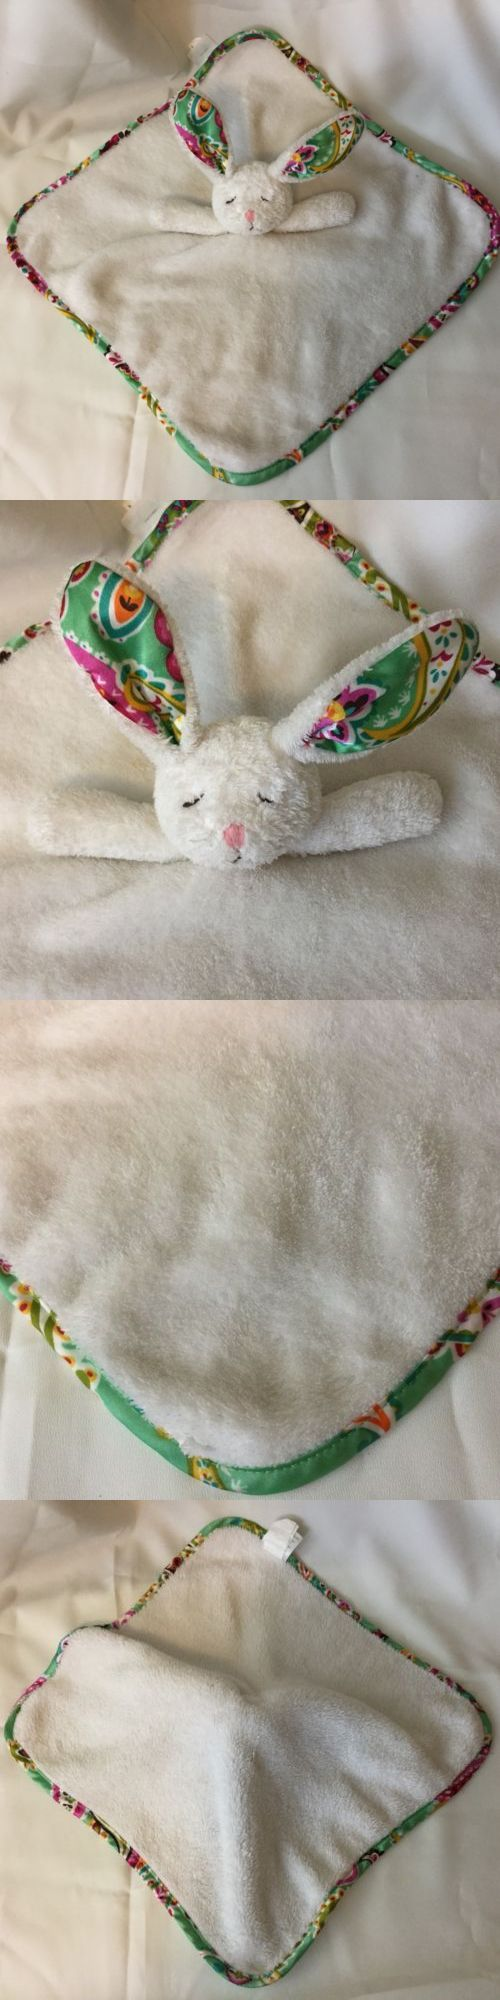 Blankets and Throws 3081: Vera Bradley Baby Lilli Bell Bunny Lovey Baby Security Blanket White F10 -> BUY IT NOW ONLY: $39.99 on eBay!